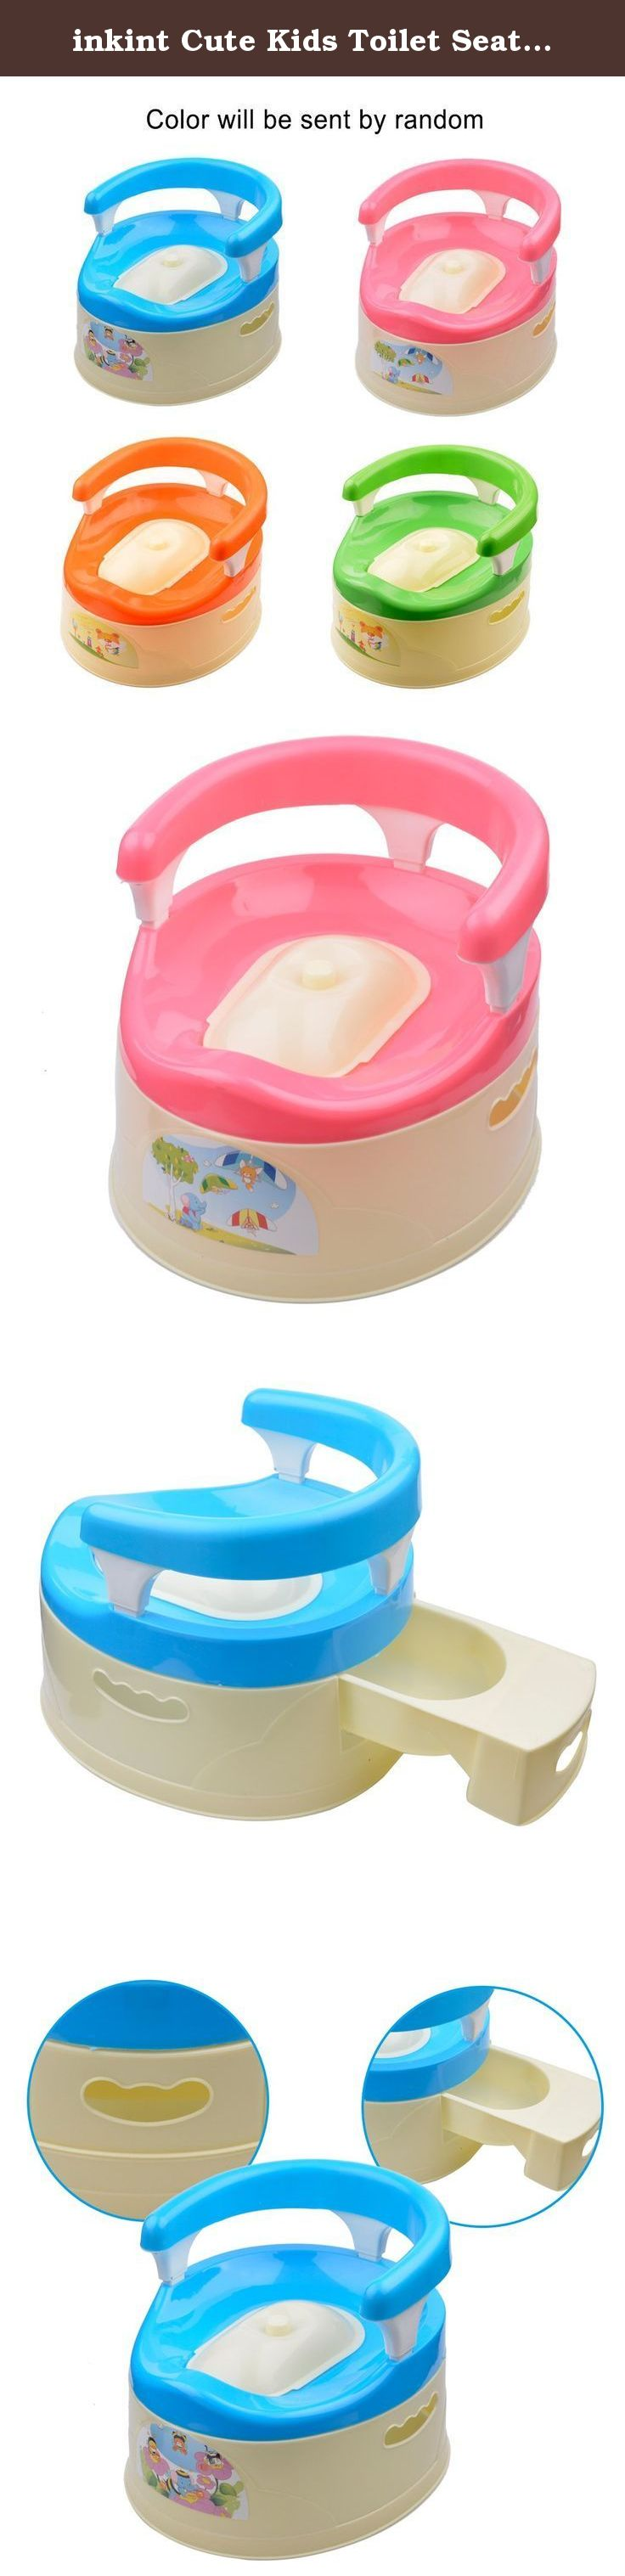 Inkint Cute Kids Toilet Seat Training Potty Urinal Portable Small Size Baby  Toilet Trainer For 8